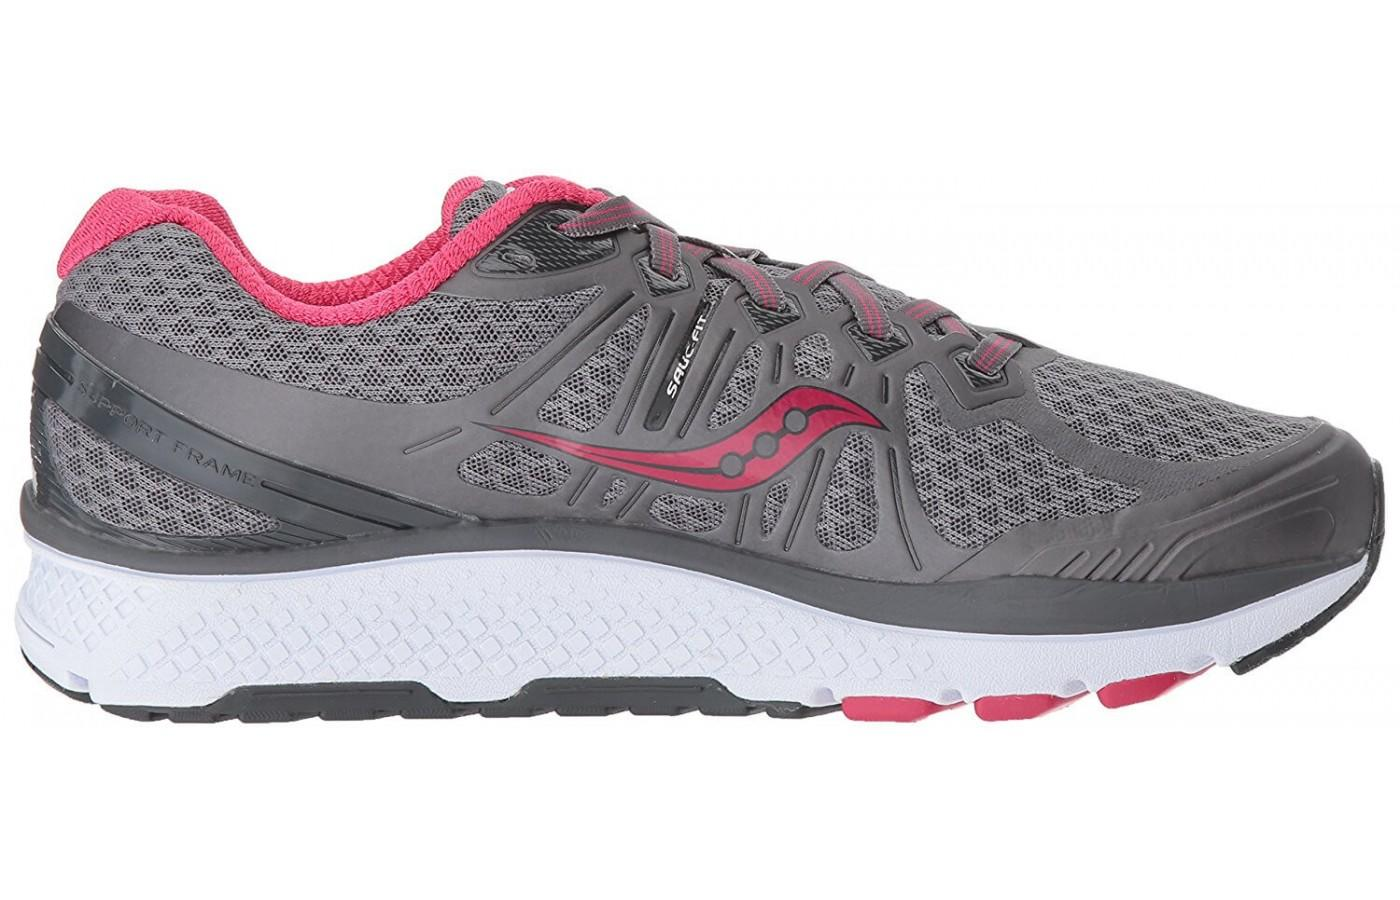 The Saucony Echelon 6 has SAUC_FIT for support around the midfoot